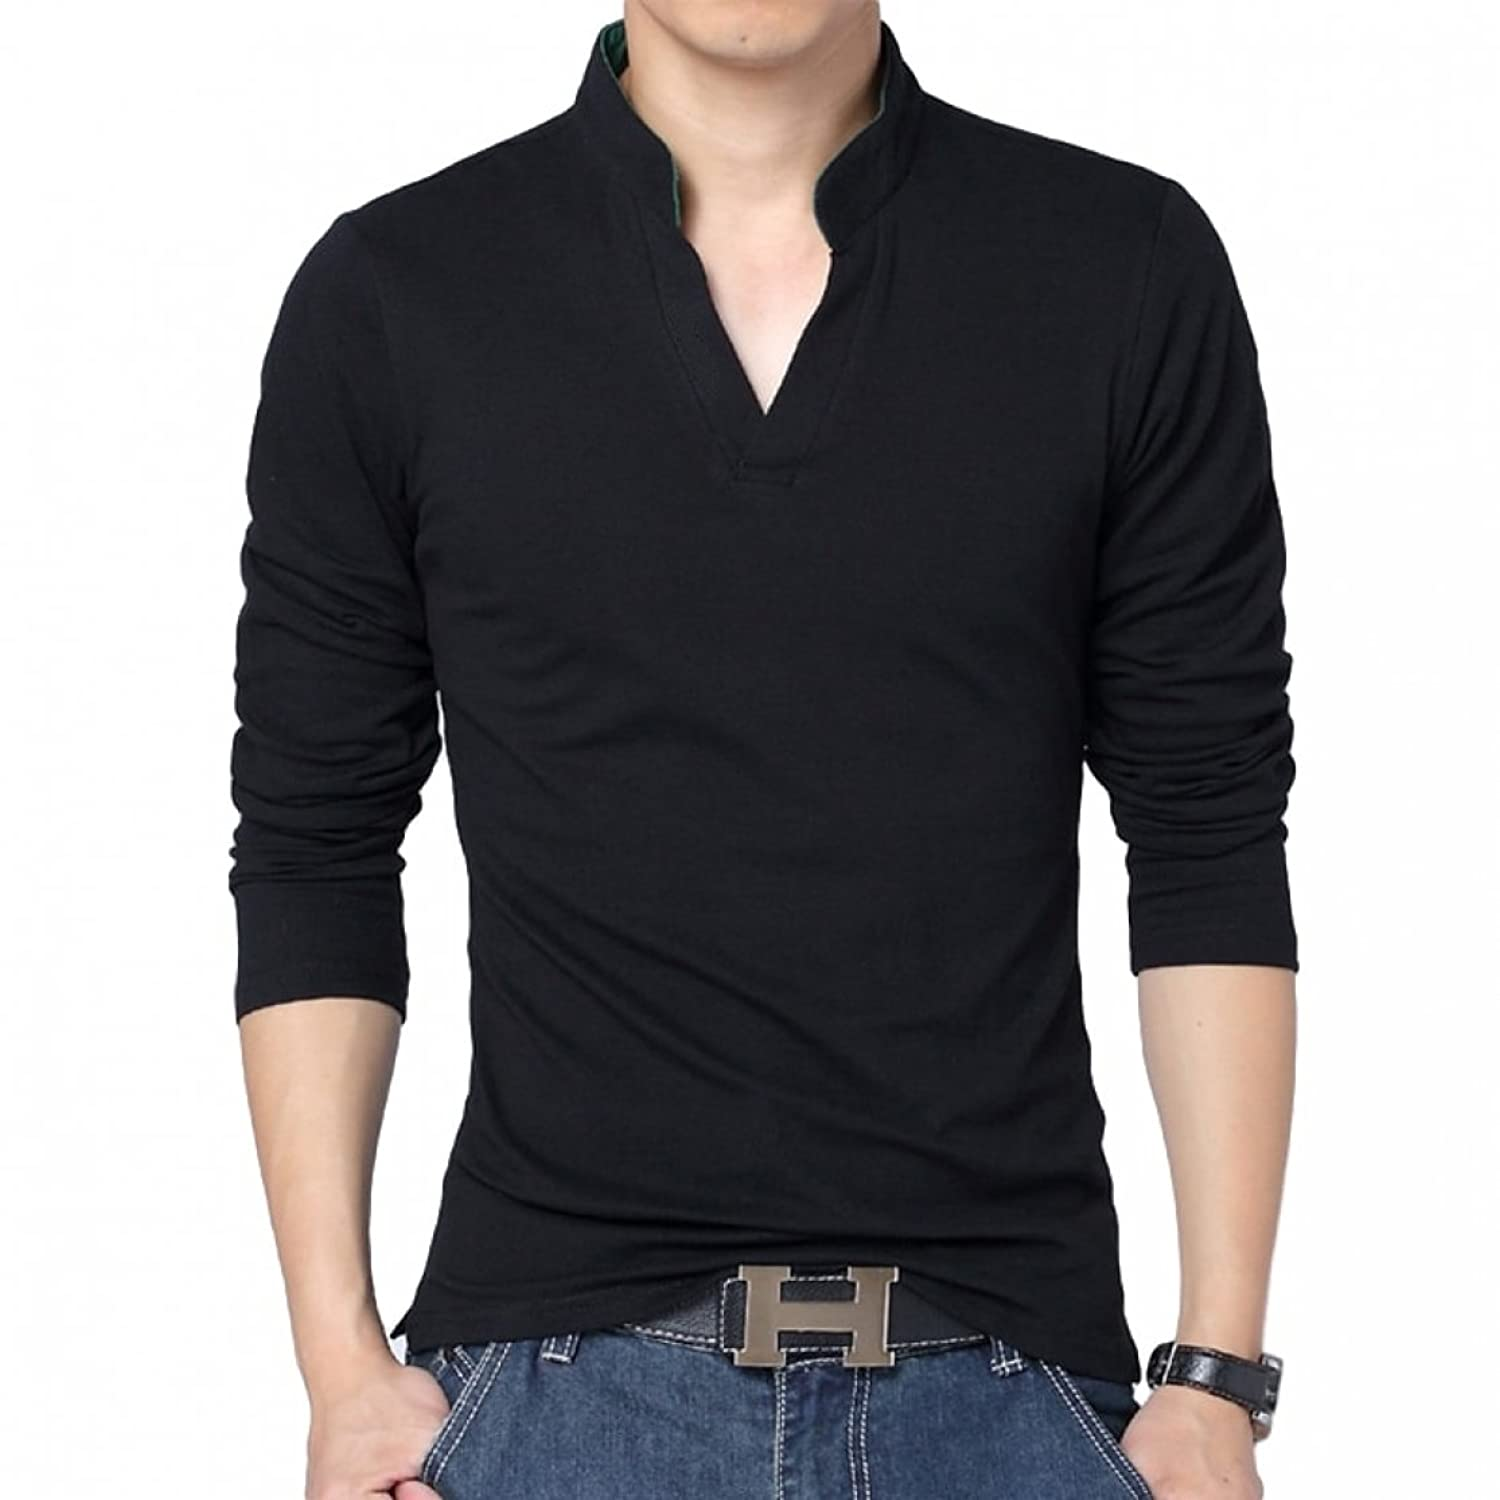 Black t shirt collar - Black Polo T Shirts Full Sleeves Tshirts For Men Amazon In Clothing Accessories